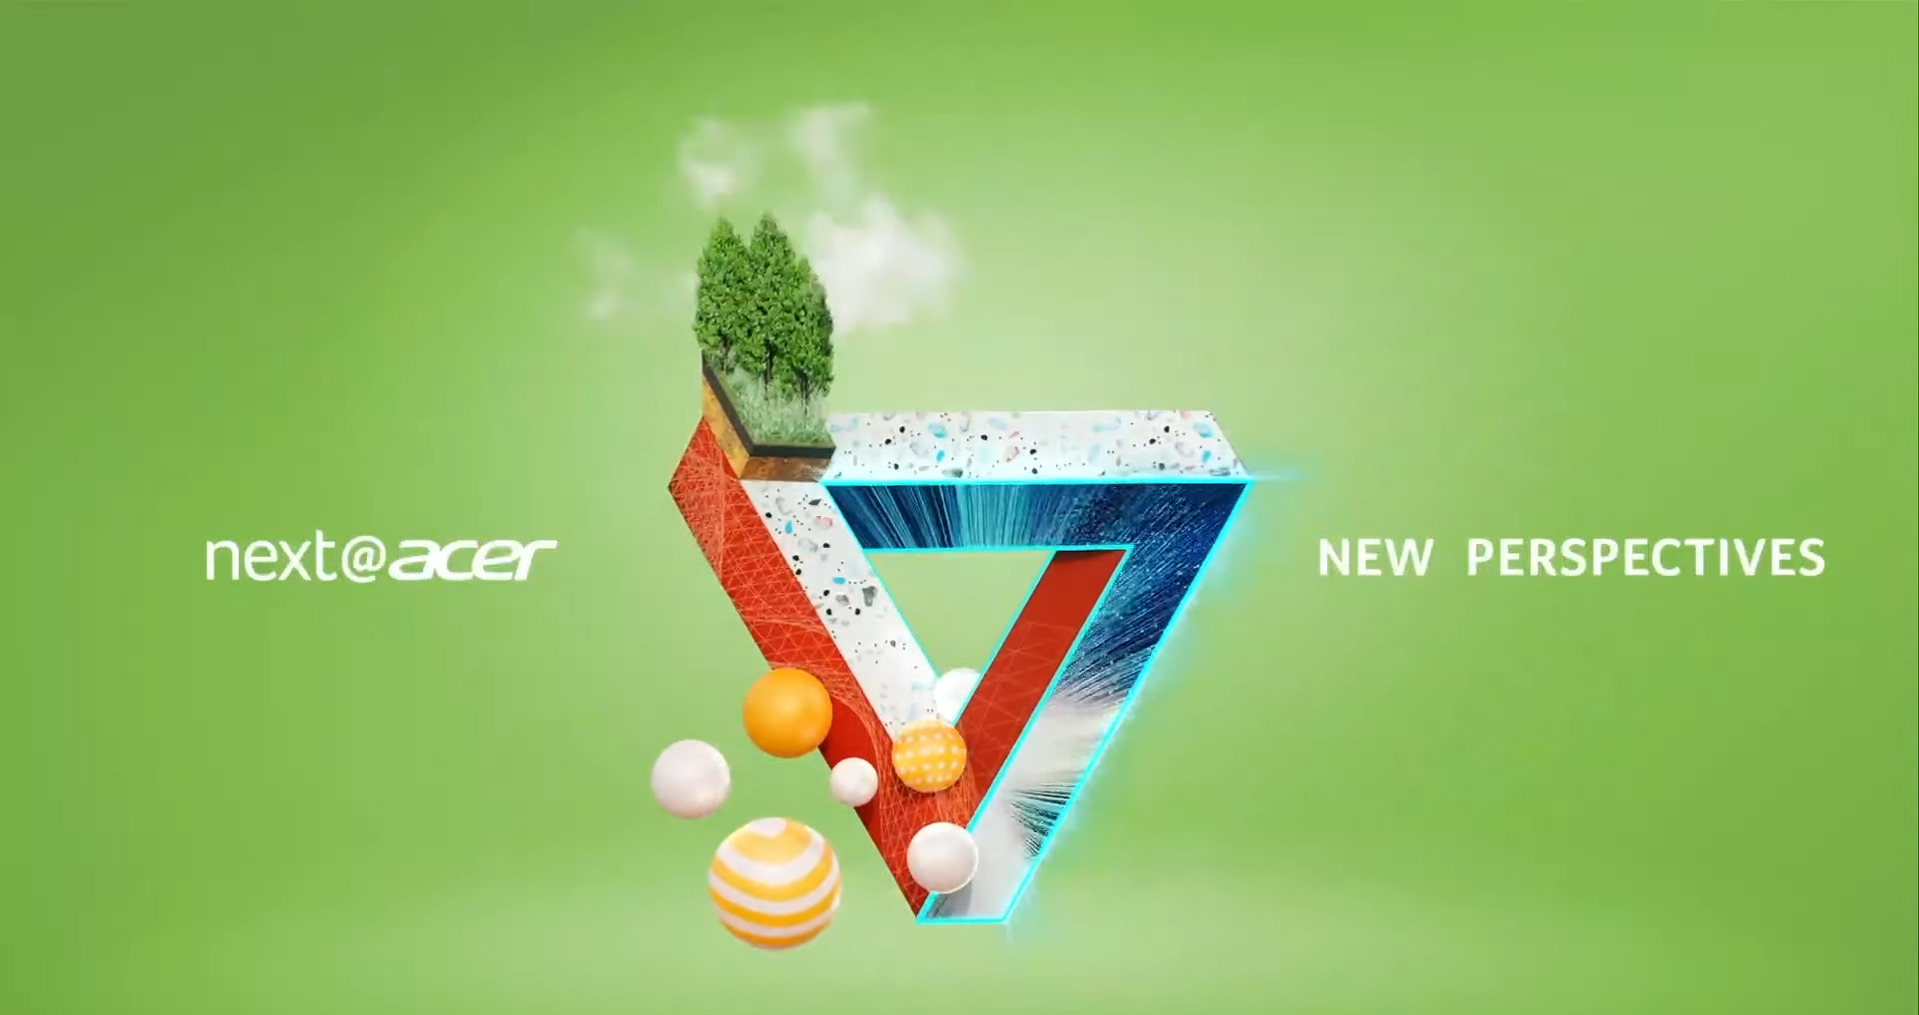 next@acer Global 2021: Exciting Products You Need to know 29